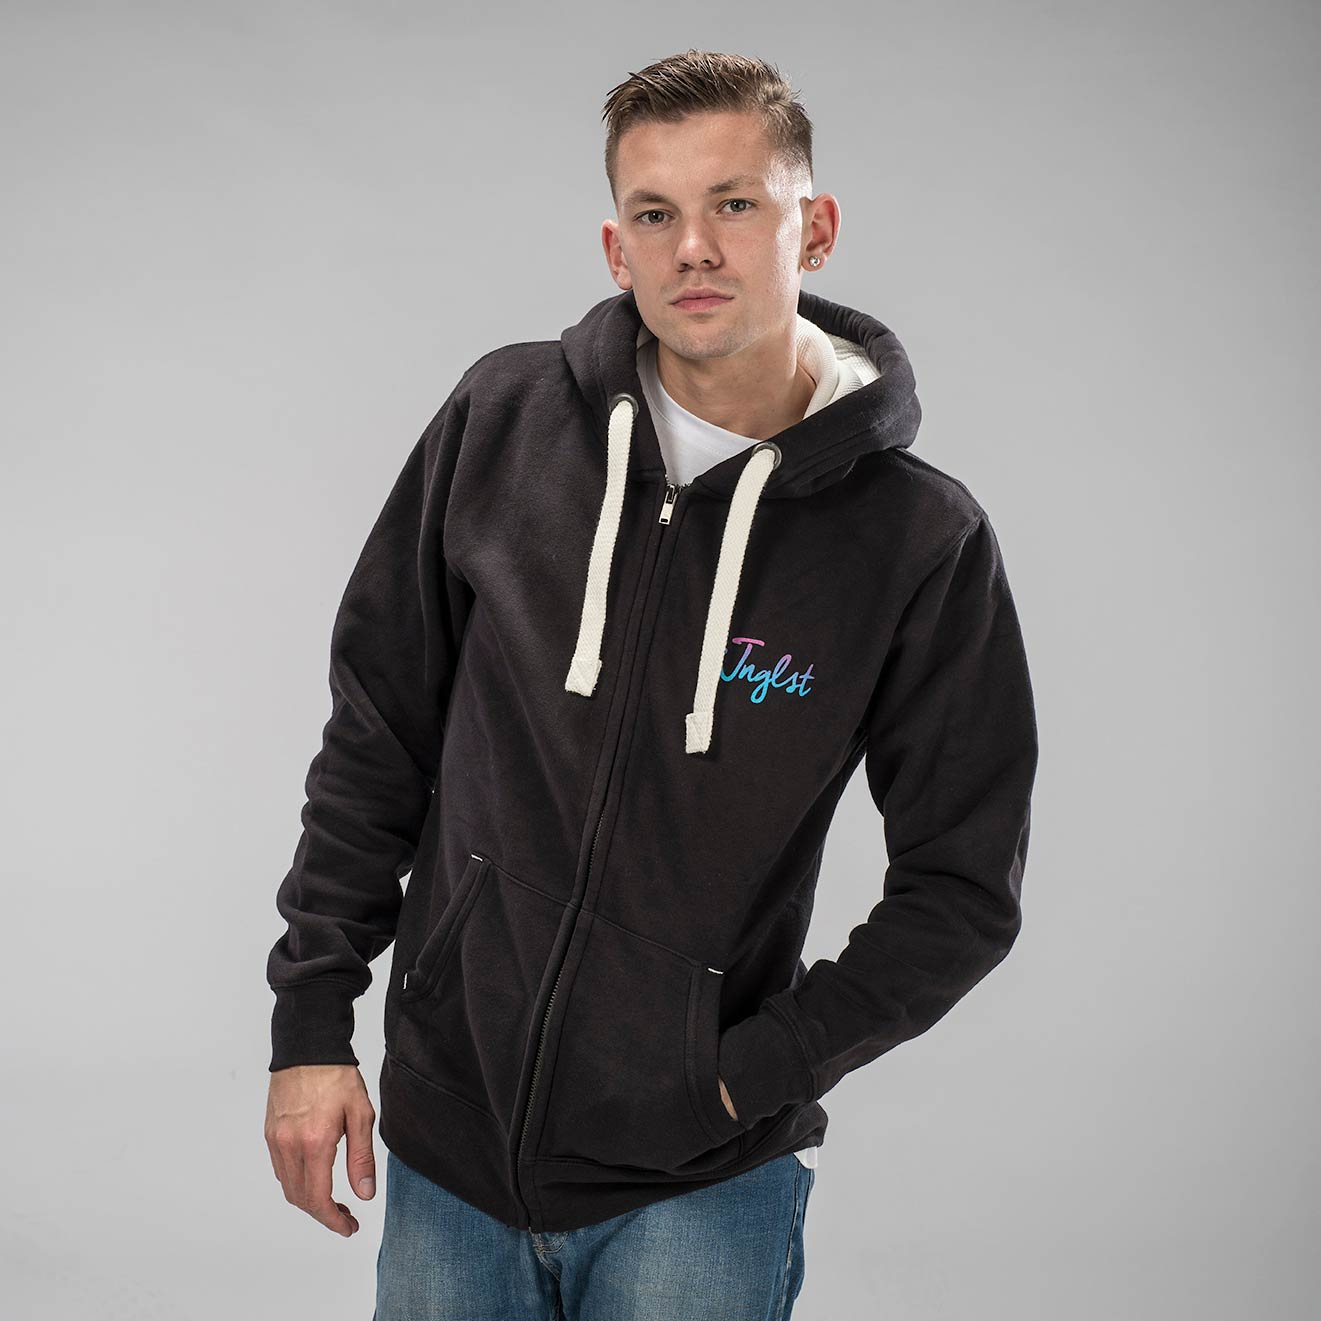 Jnglst Fader Hoodie from the front from Junglist Clothing